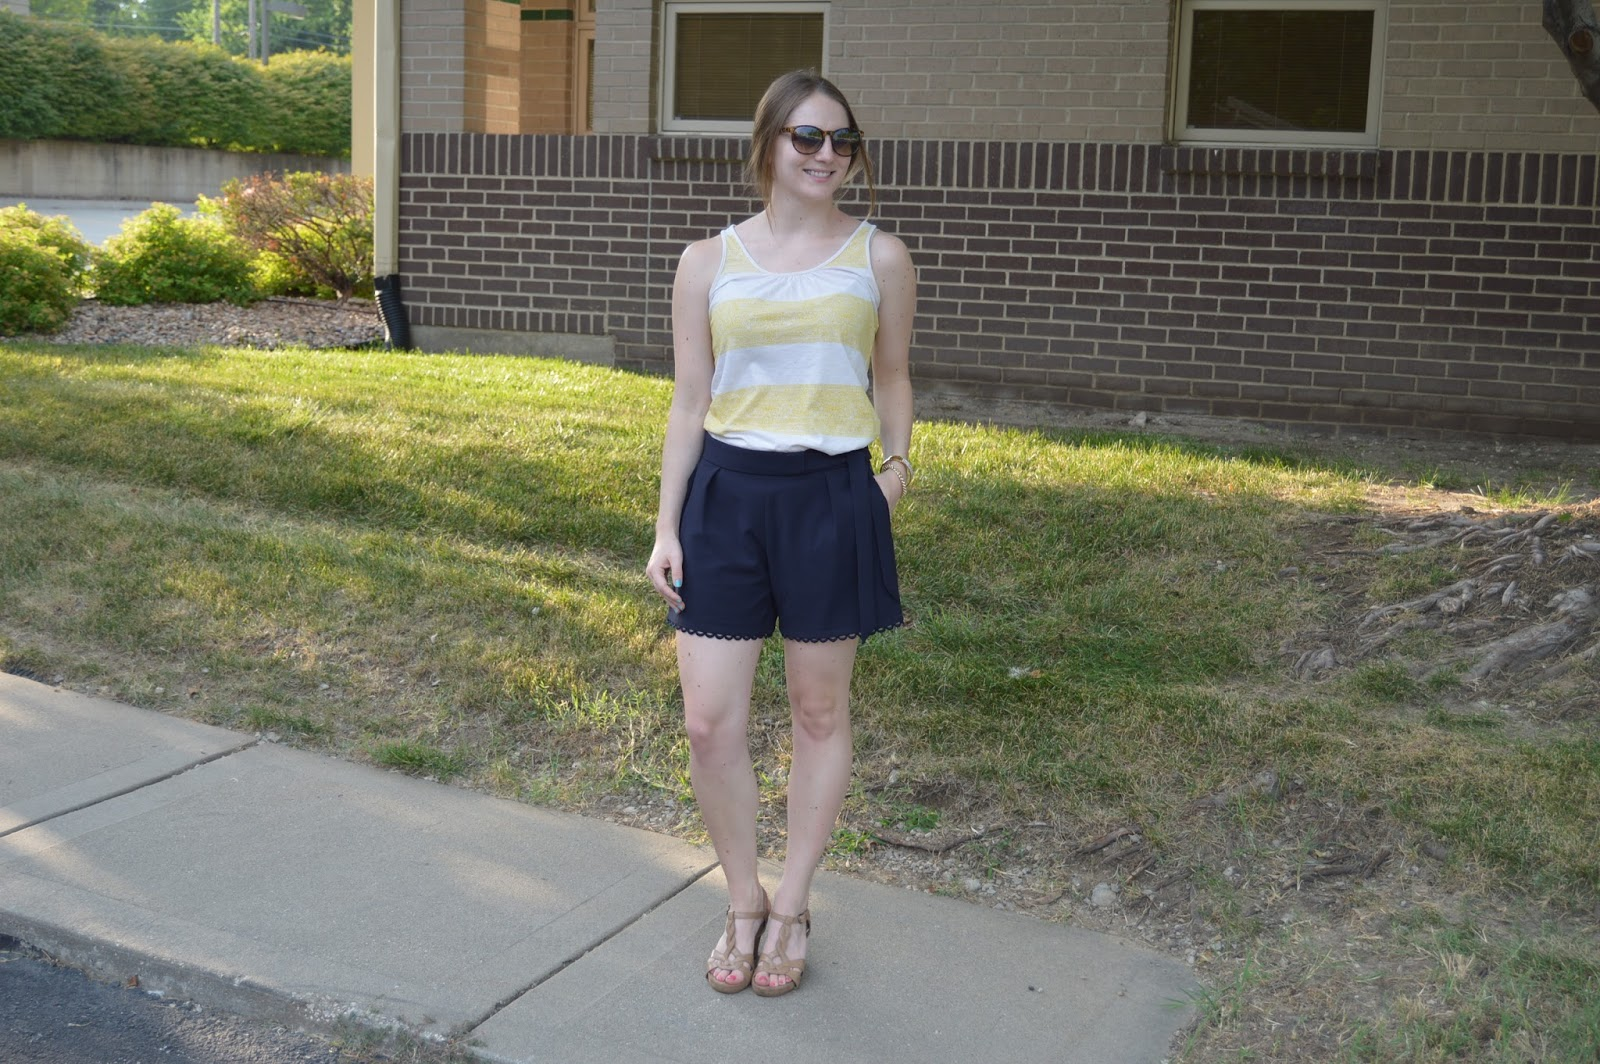 cute summer outfit ideas | navy shorts with yellow tank top | date night looks with shorts | shorts and wedges | classy looks with shorts | summer looks | what to wear for date night this summer | date night looks with shorts | a memory of us |